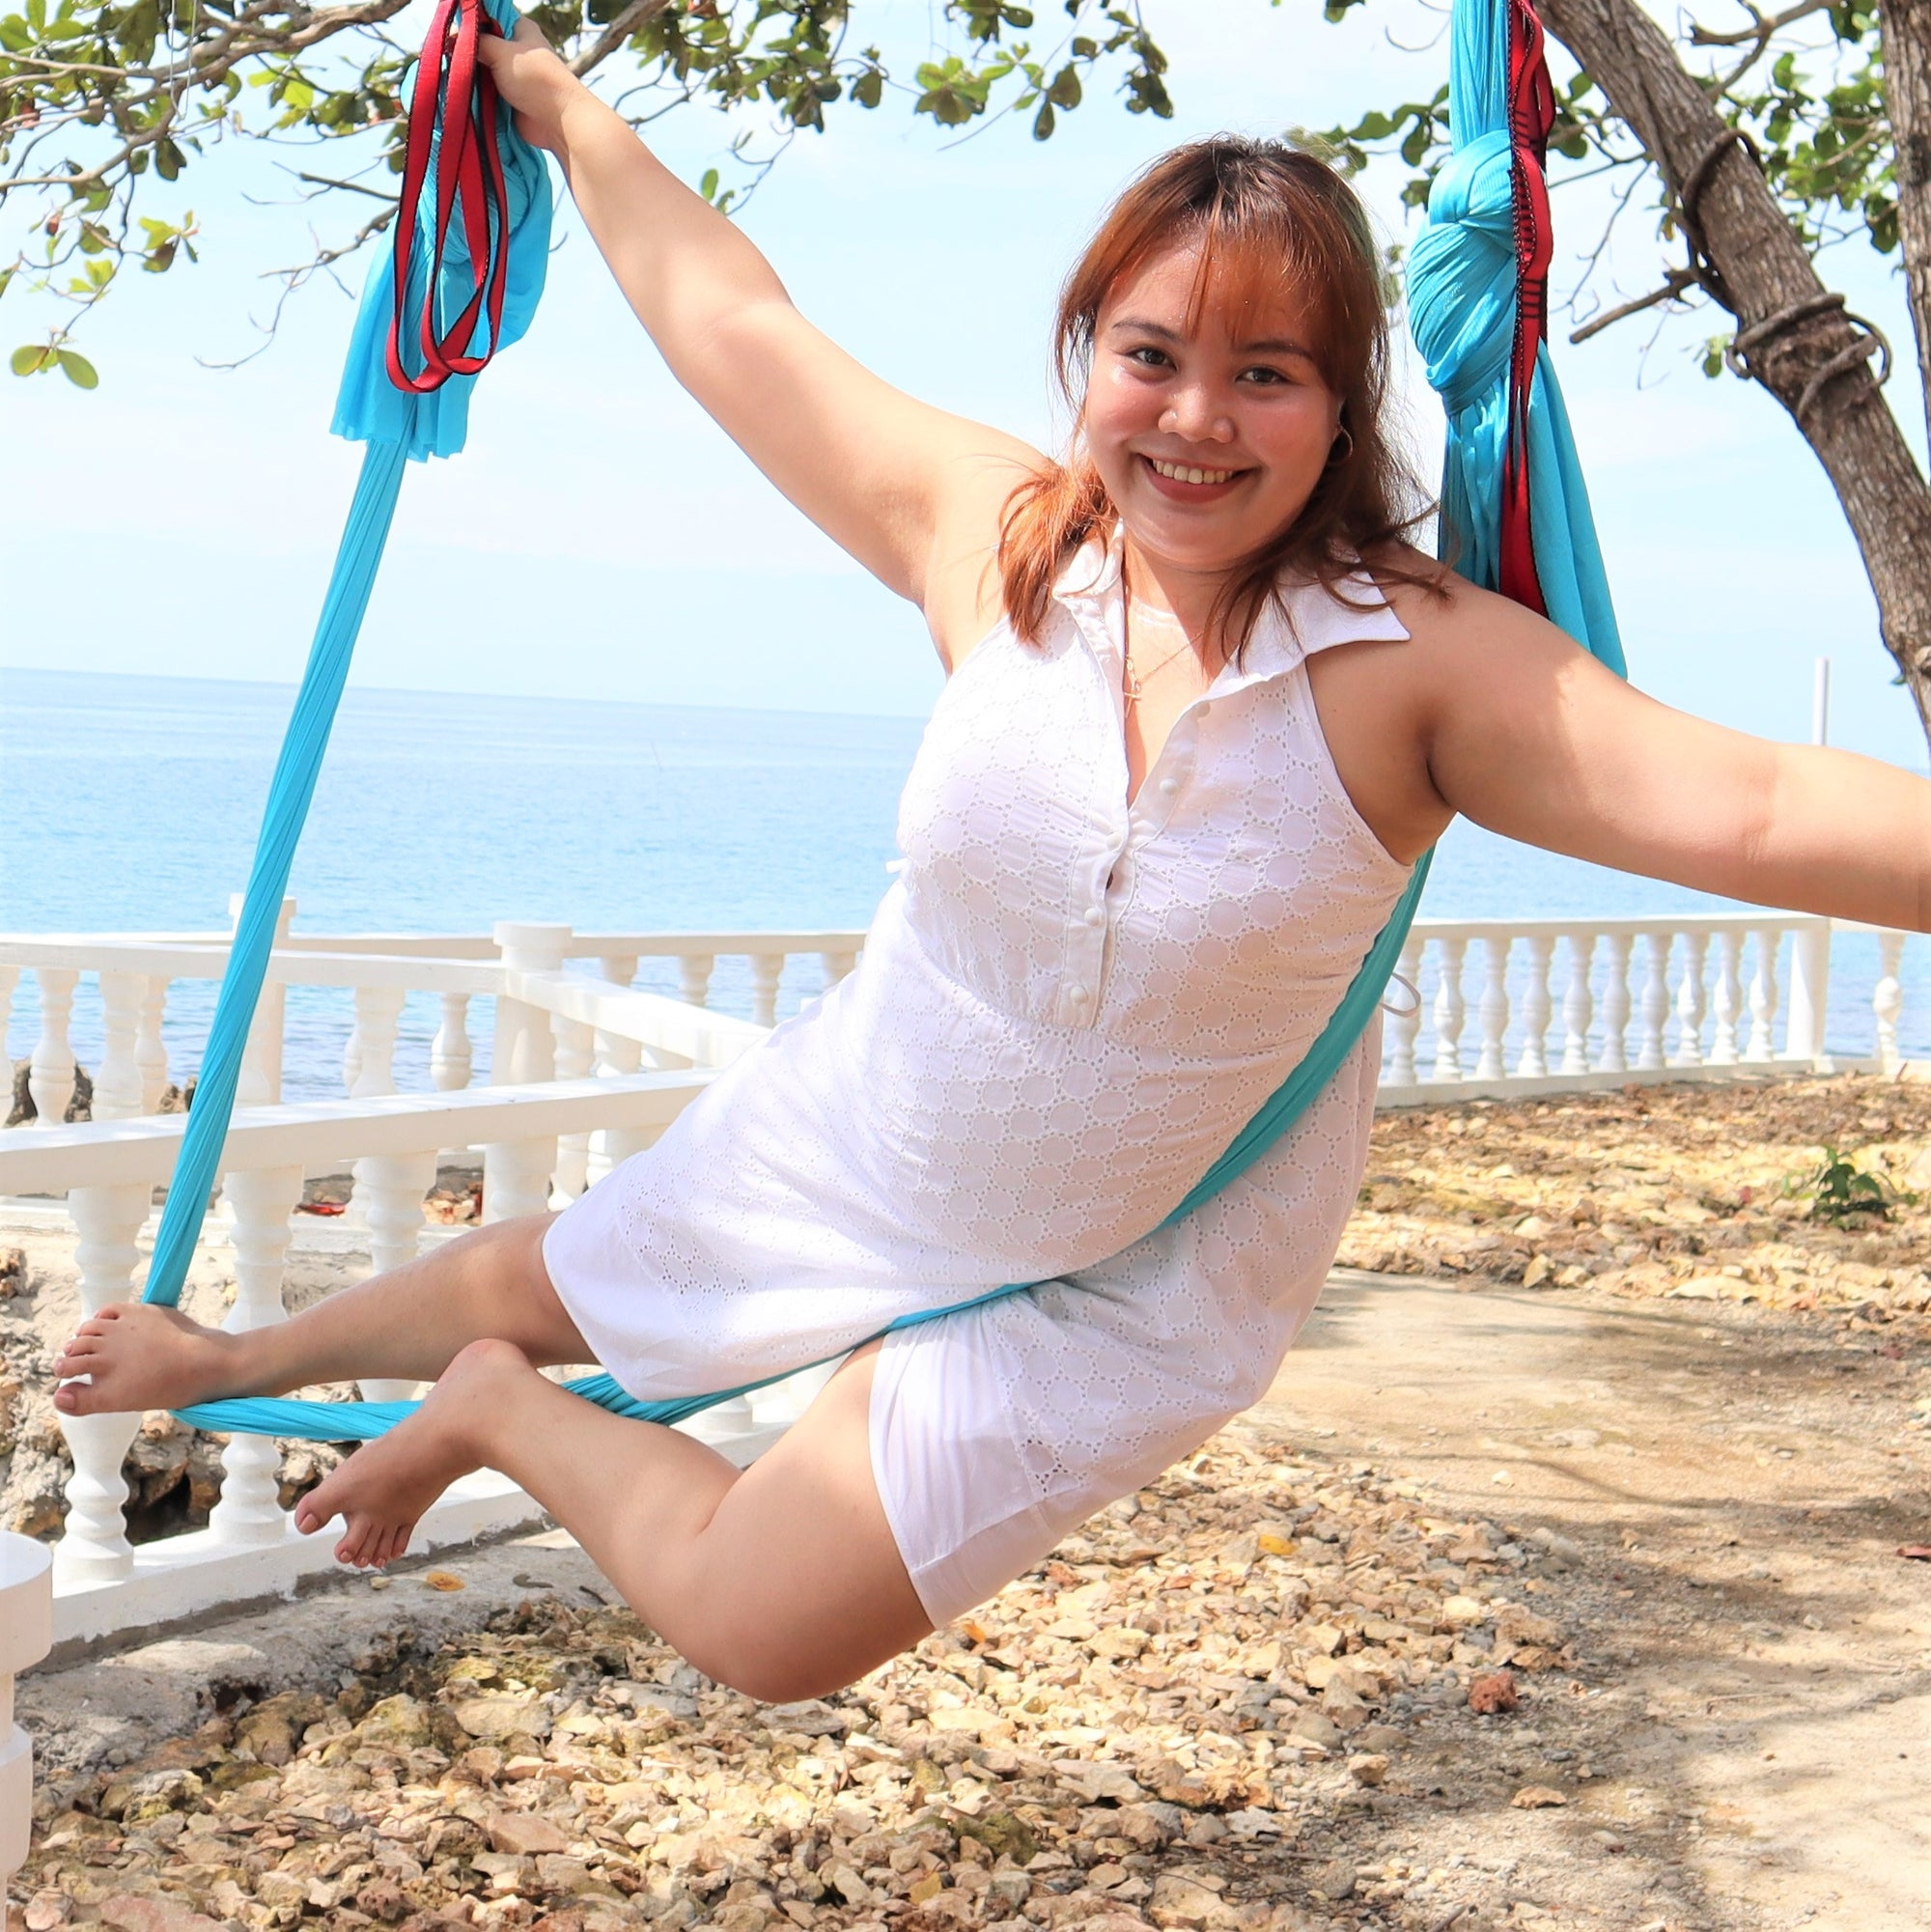 Jeranie Outdoor Aerial Yoga x Uplift Active